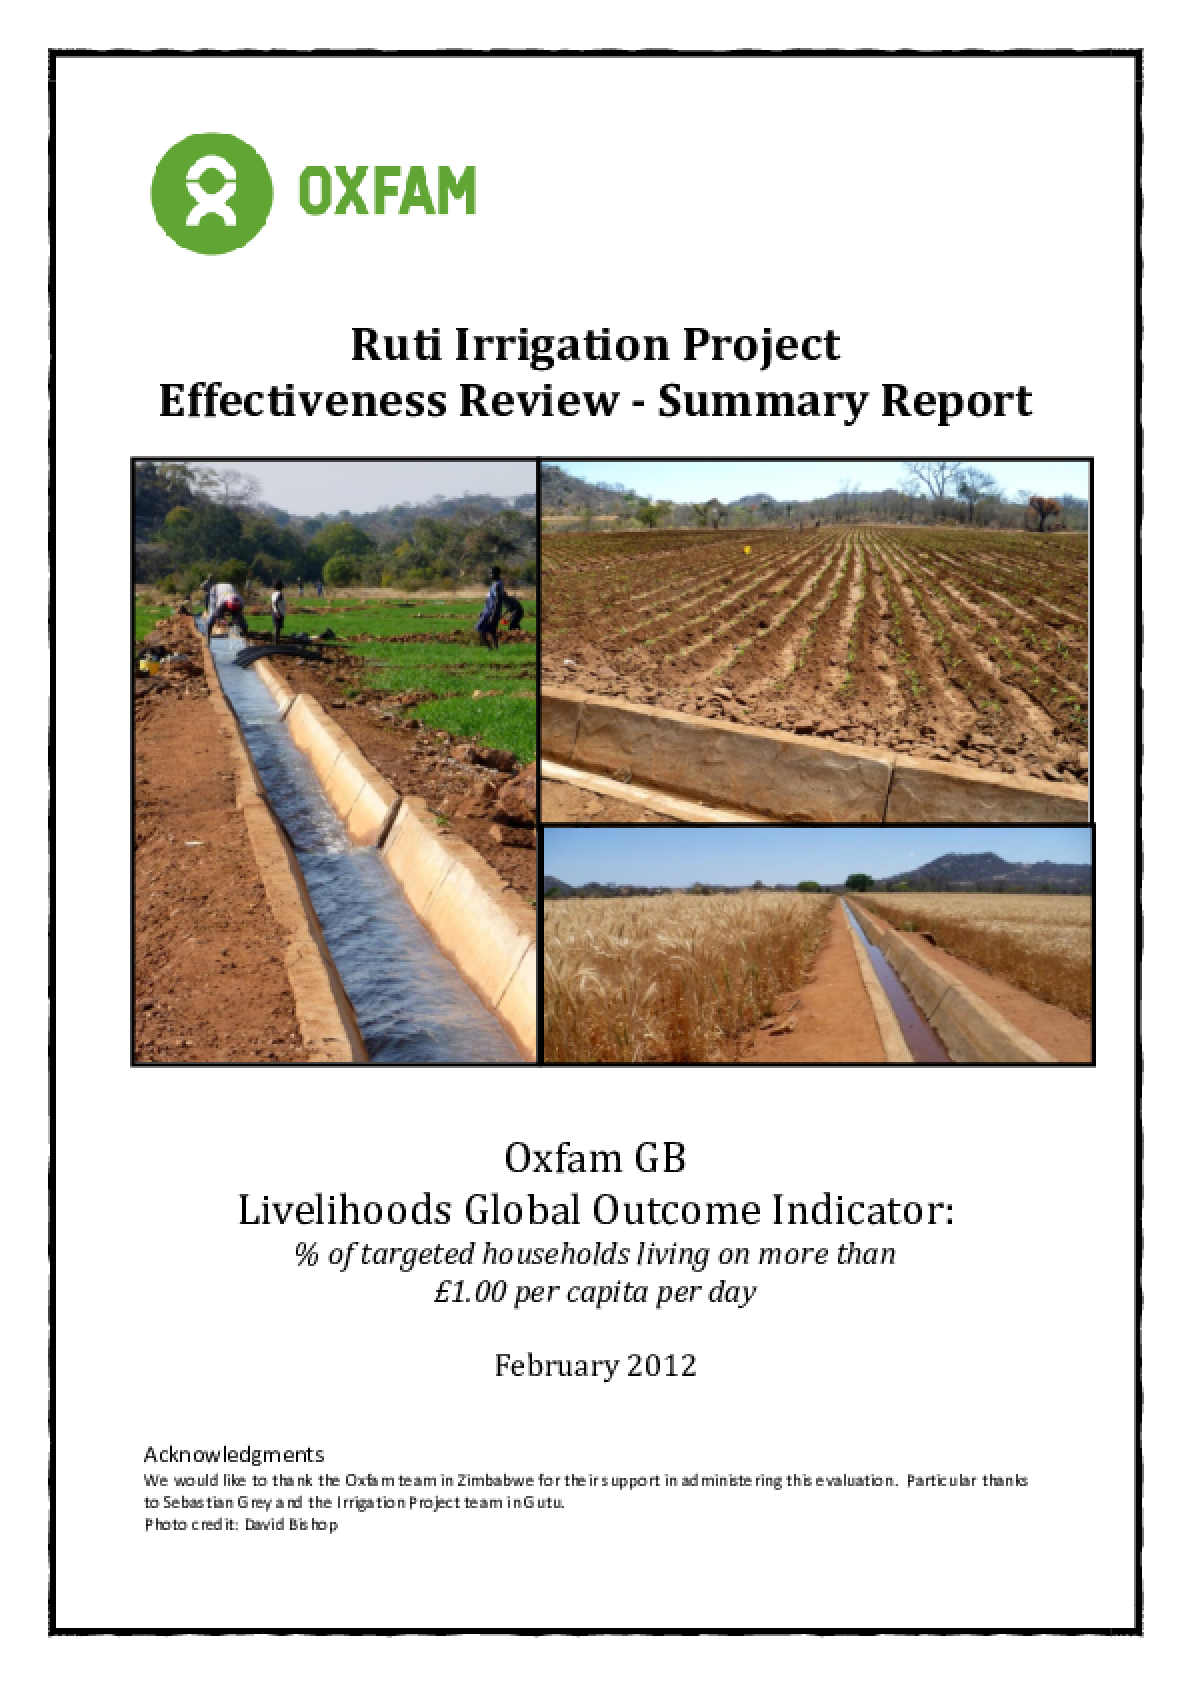 Effectiveness Review: Ruti Irrigation Project, Zimbabwe